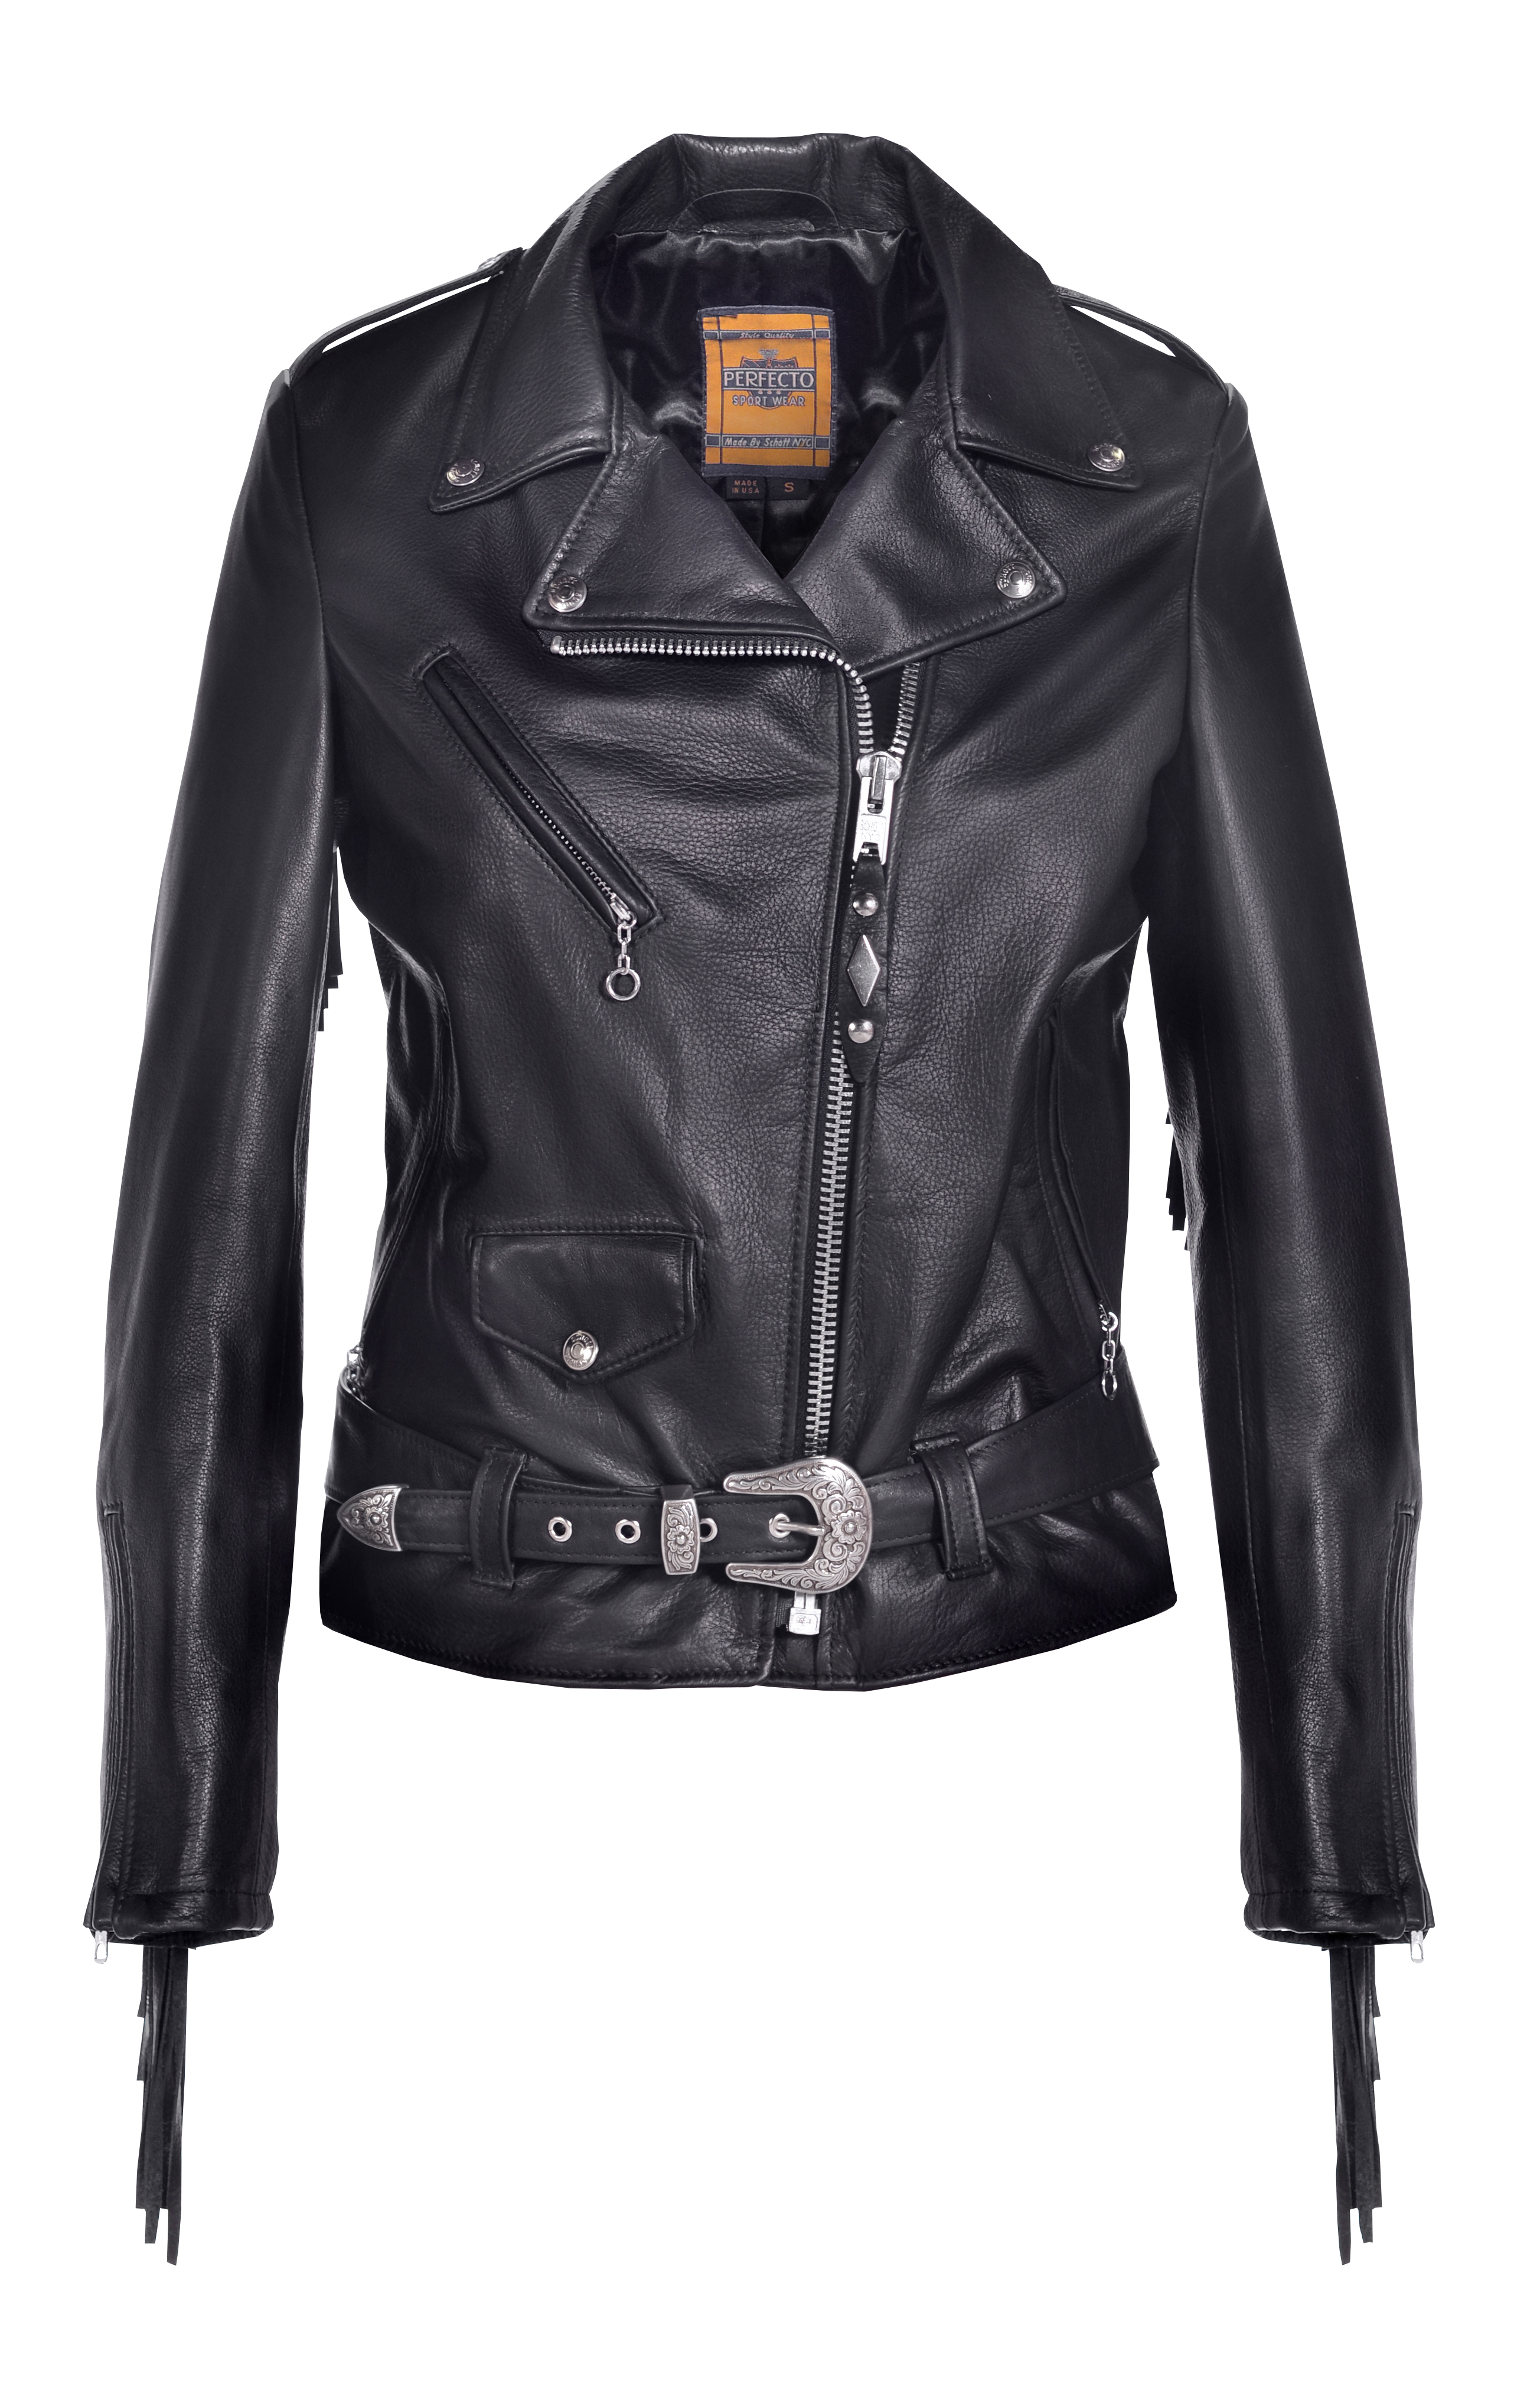 Schott N.Y.C. 526W Women's Fringed Motorcycle Jacket